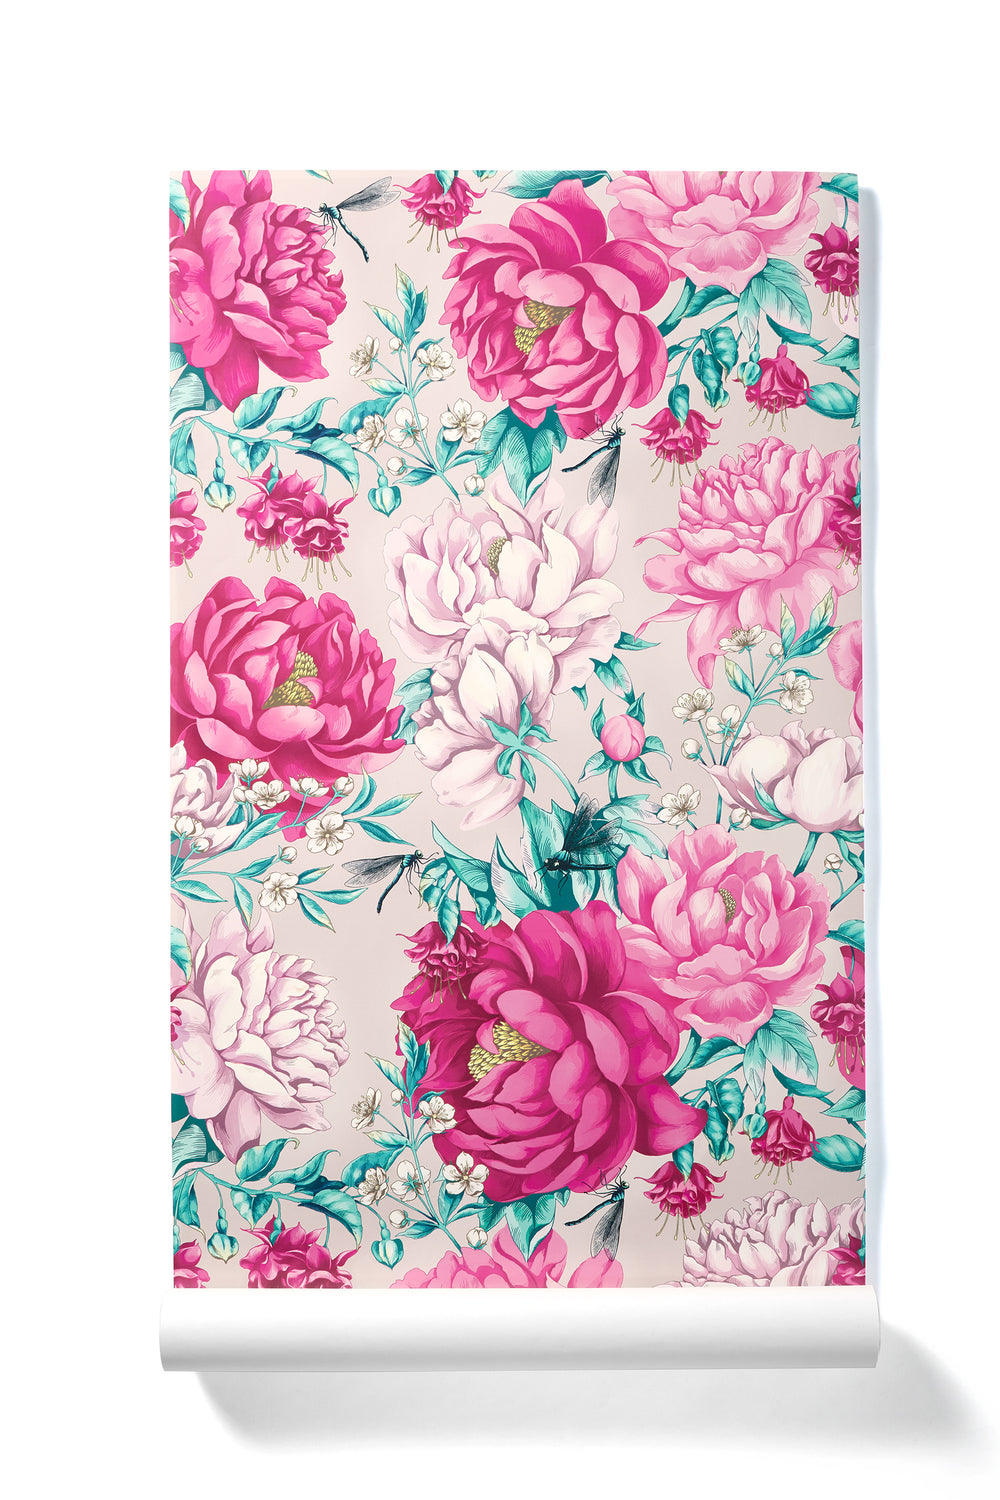 Everyday Miracles - Oversized Blush & Hot Pink Peony Floral Wallpaper